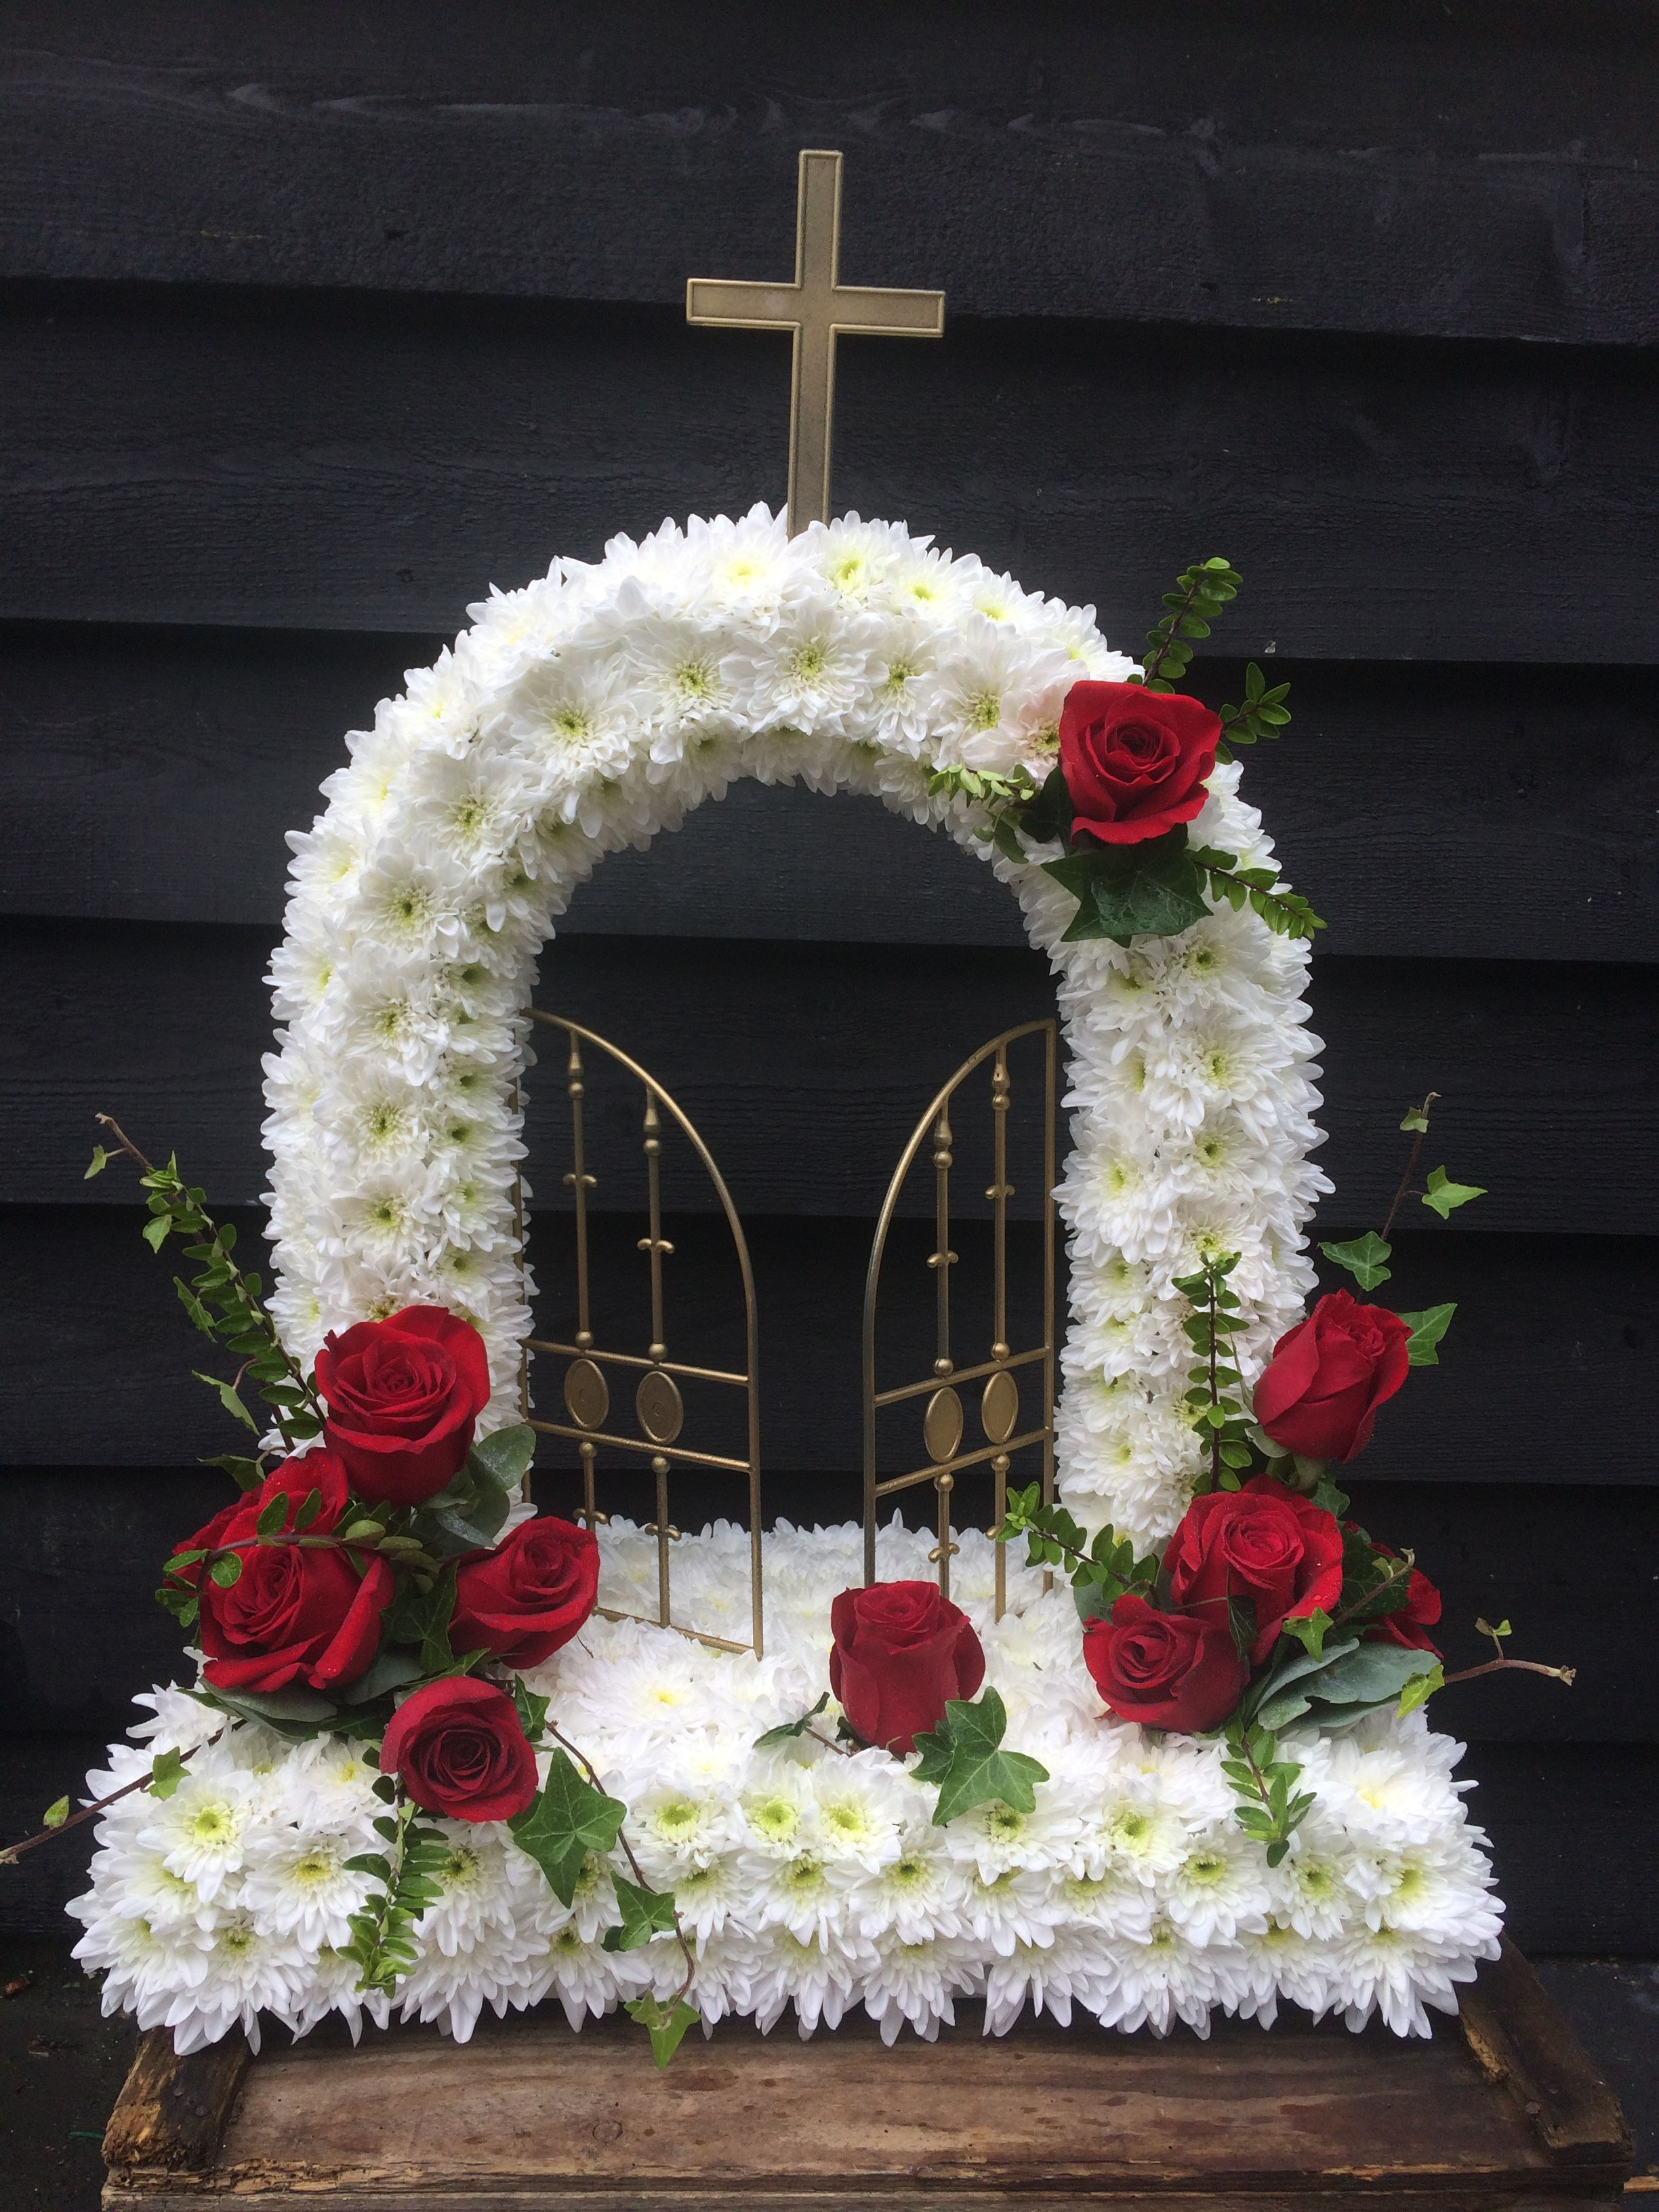 Gates of heaven massed in white with red rose sprays funeral gates of heaven massed in white with red rose sprays izmirmasajfo